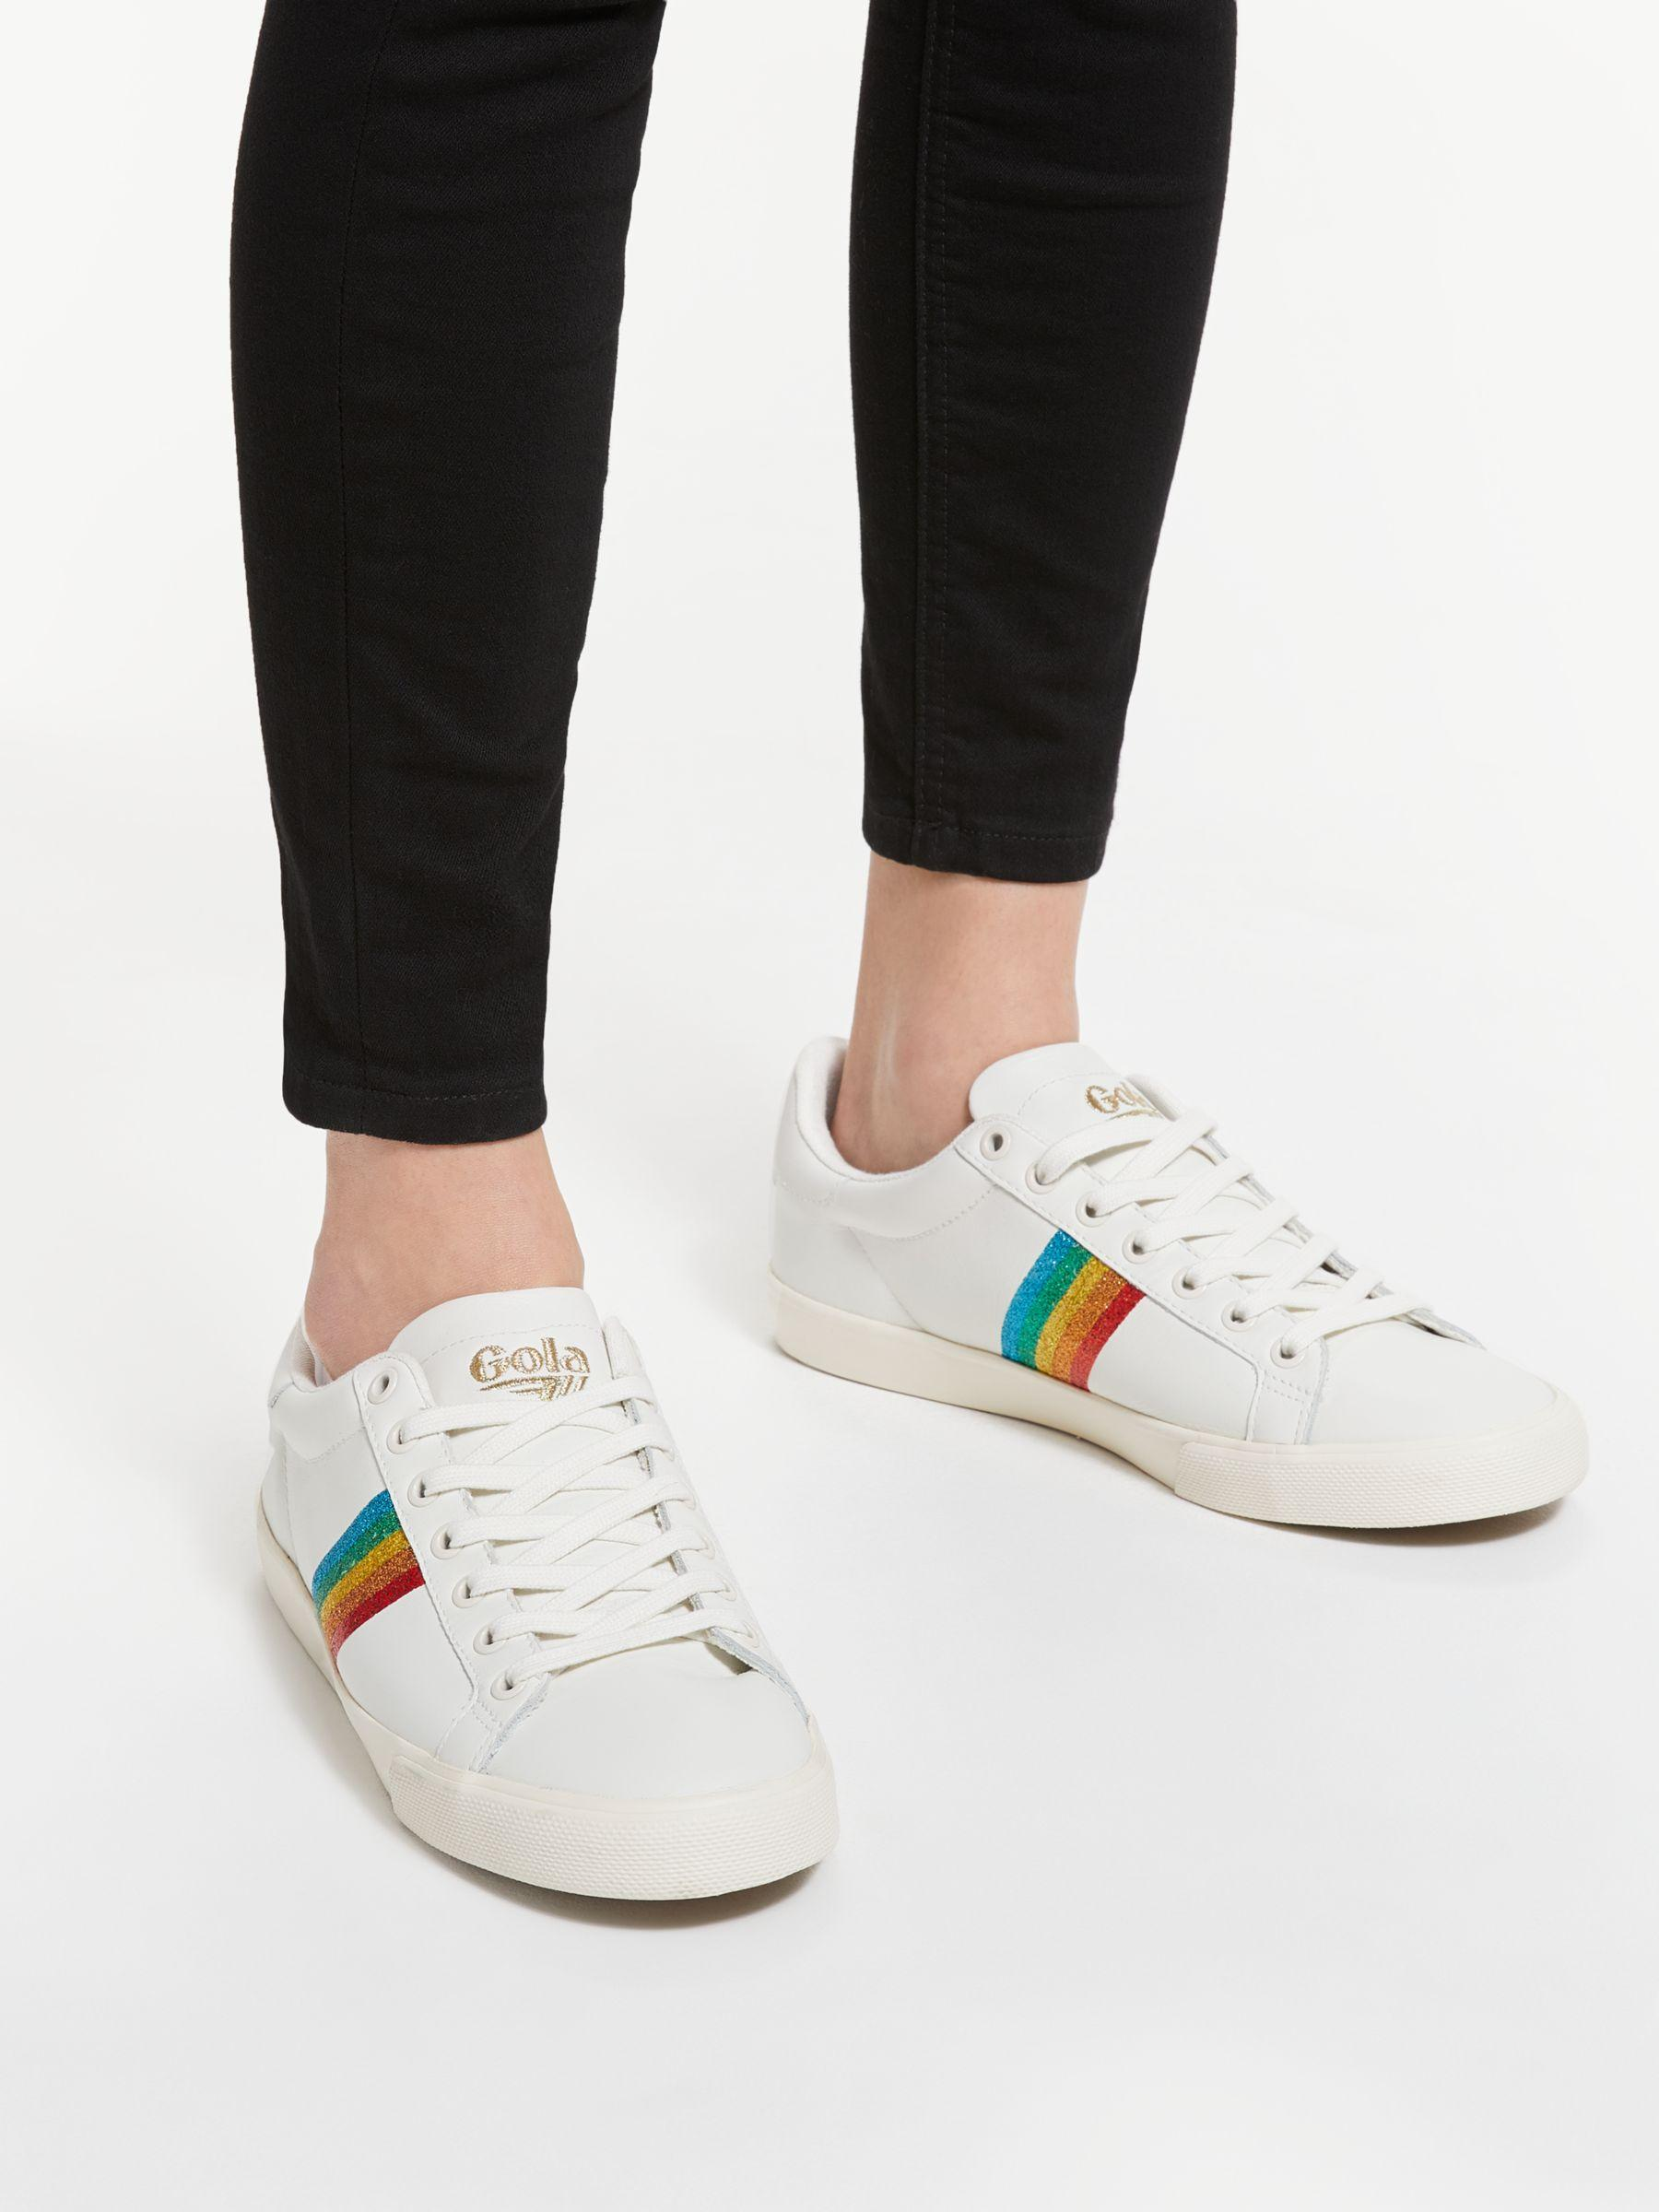 Gola Orchid Rainbow Low Top Trainers in